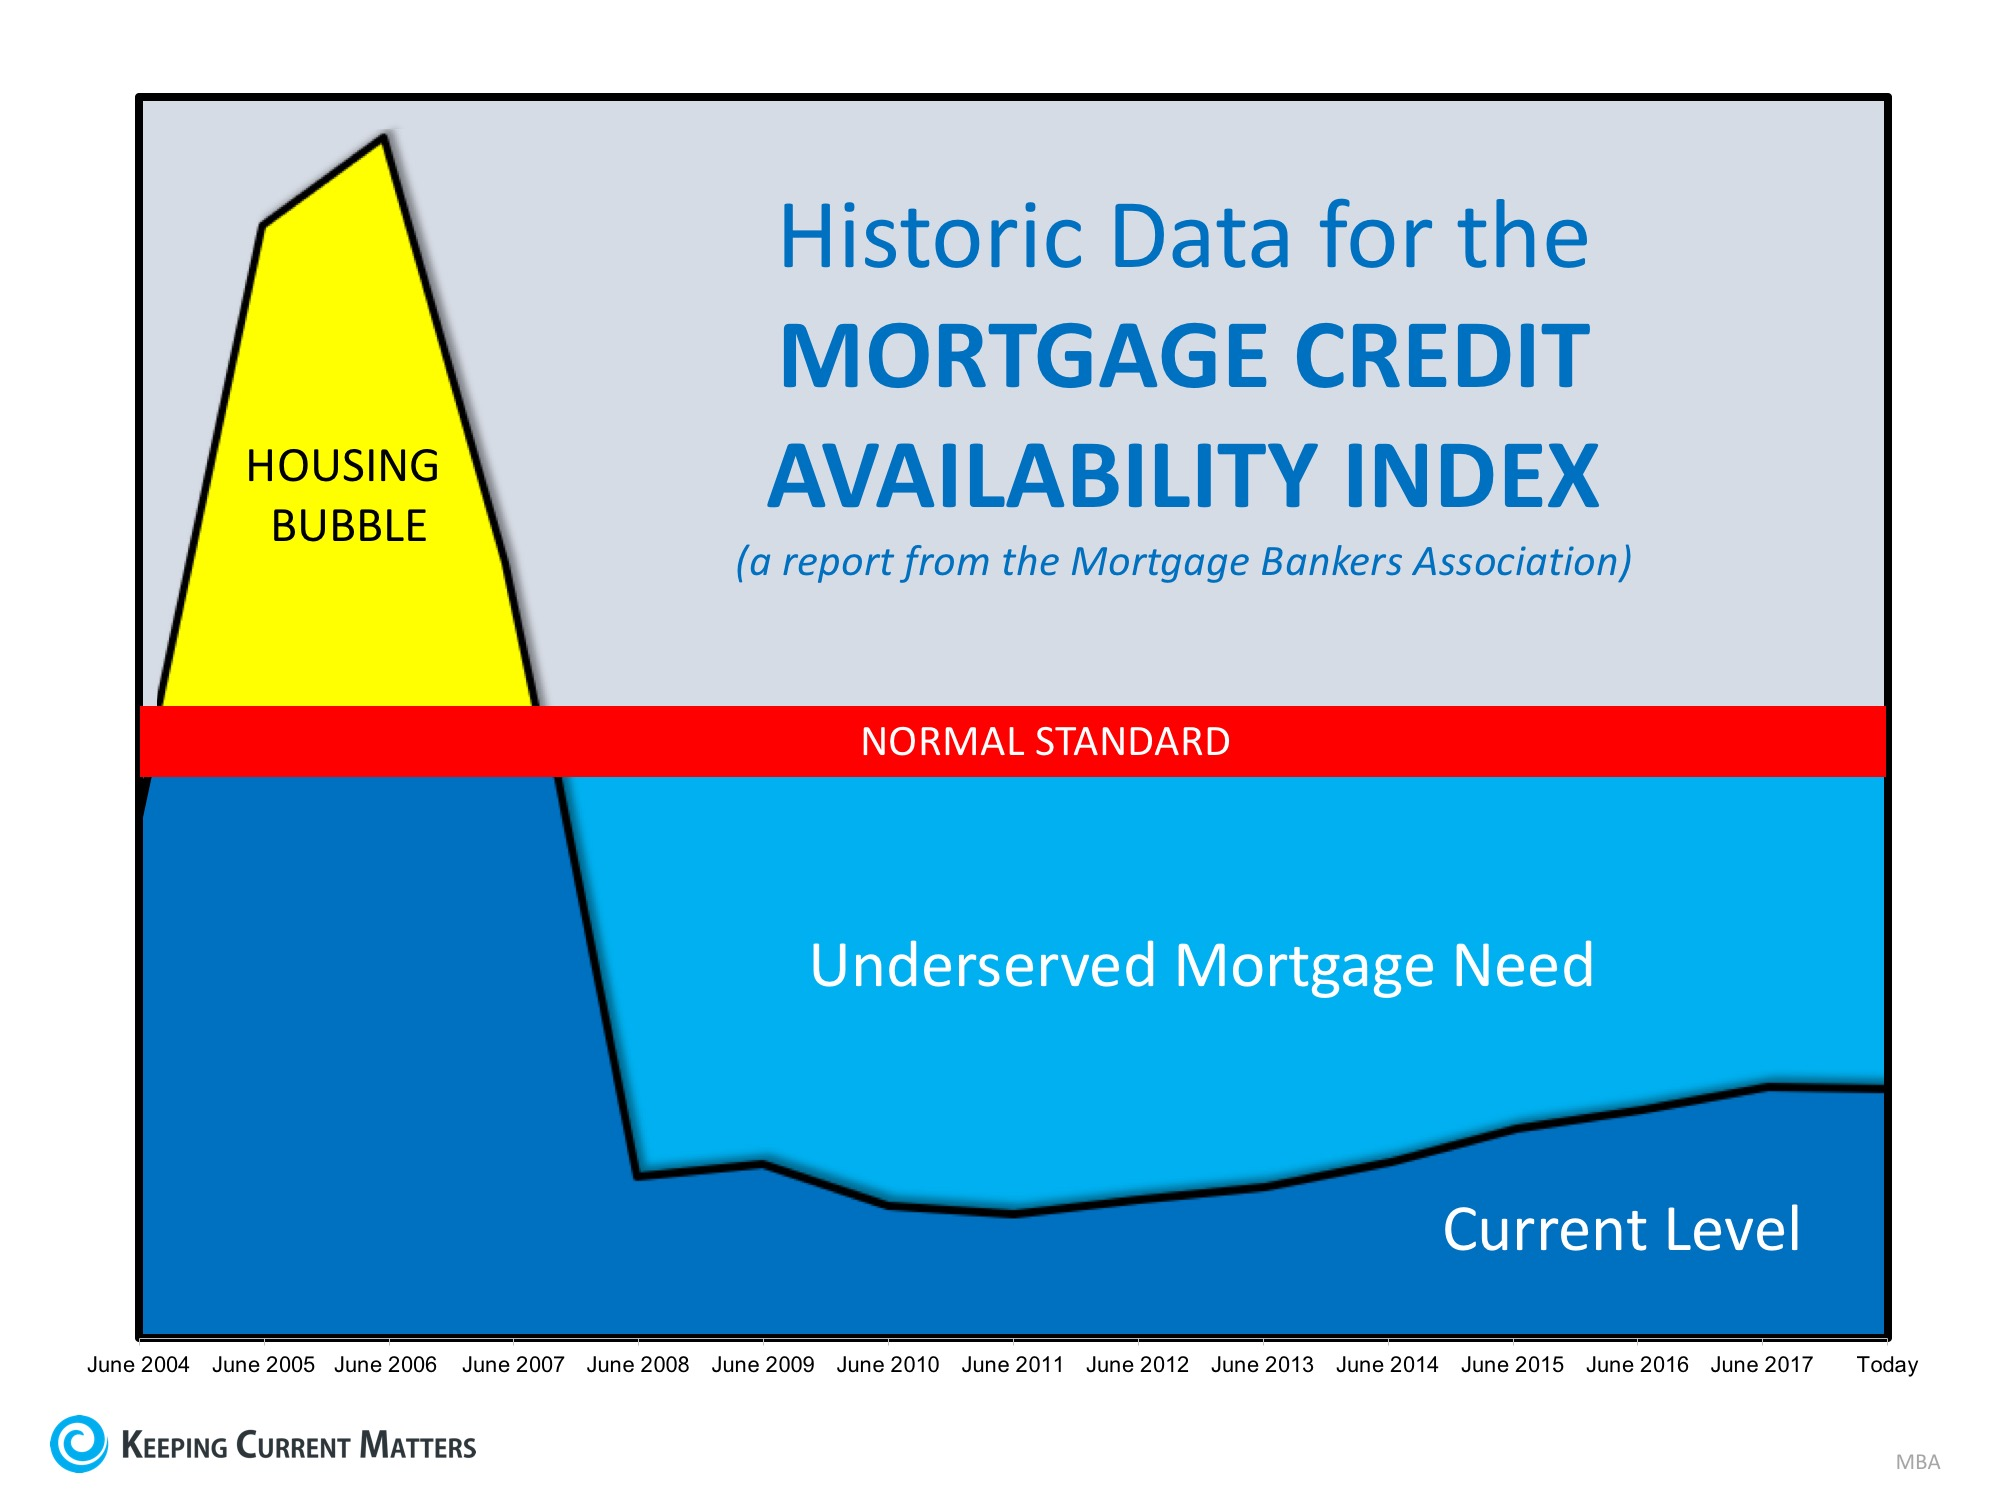 Historic Data for Mortgage Credit Availability